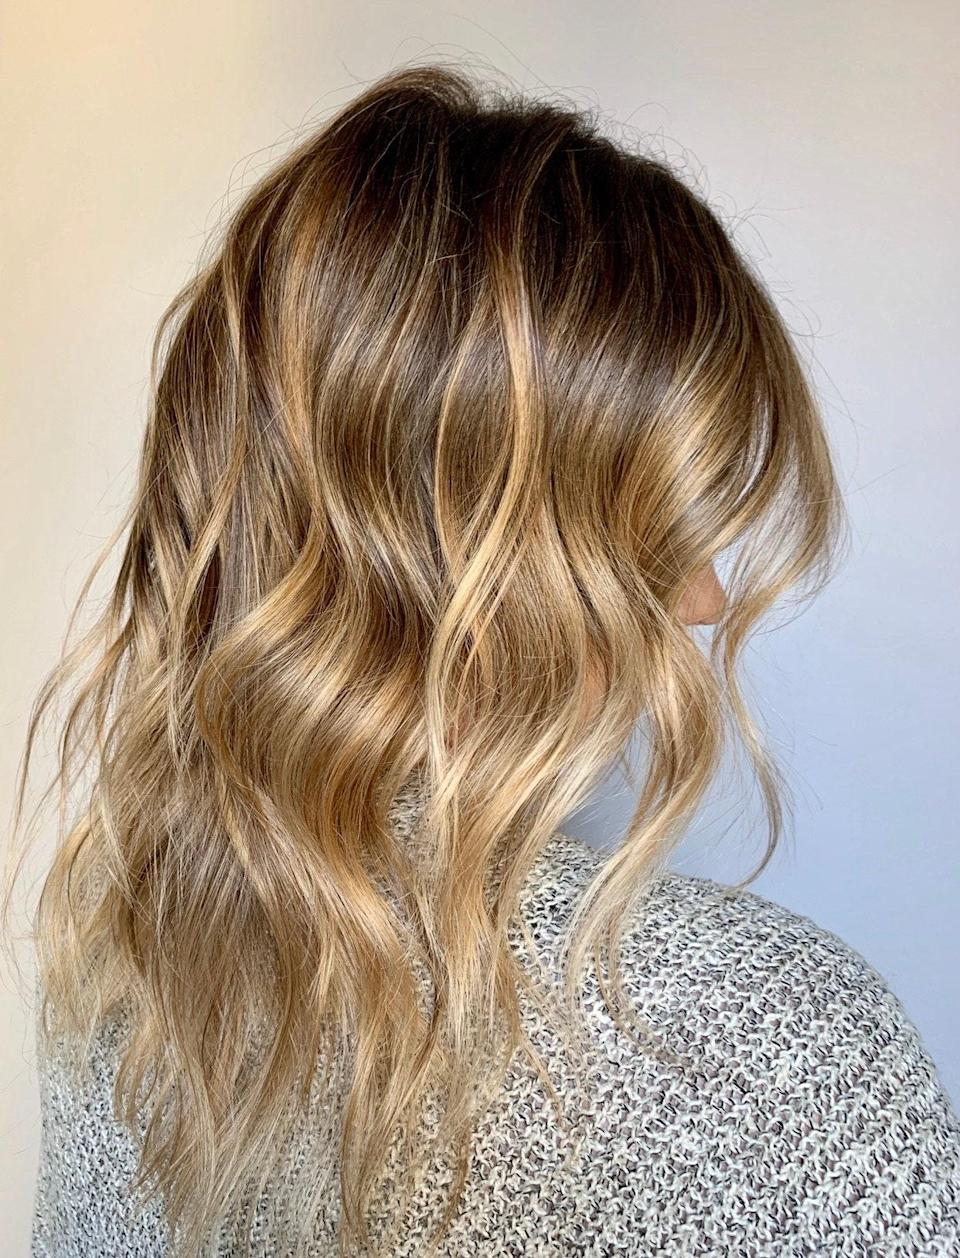 """""""In between blond and brown—bronde—is always beautiful for people who are naturally dark to medium brown,"""" says Grummel. """"Those with darker hair naturally pull warm because of underlying pigment in the hair, so to achieve a beautiful bronde, some warmth is necessary."""" She adds that this shade is great for those who don't want to commit to tons of touch-ups and is perfect for brunettes wanting to try blond for the first time."""